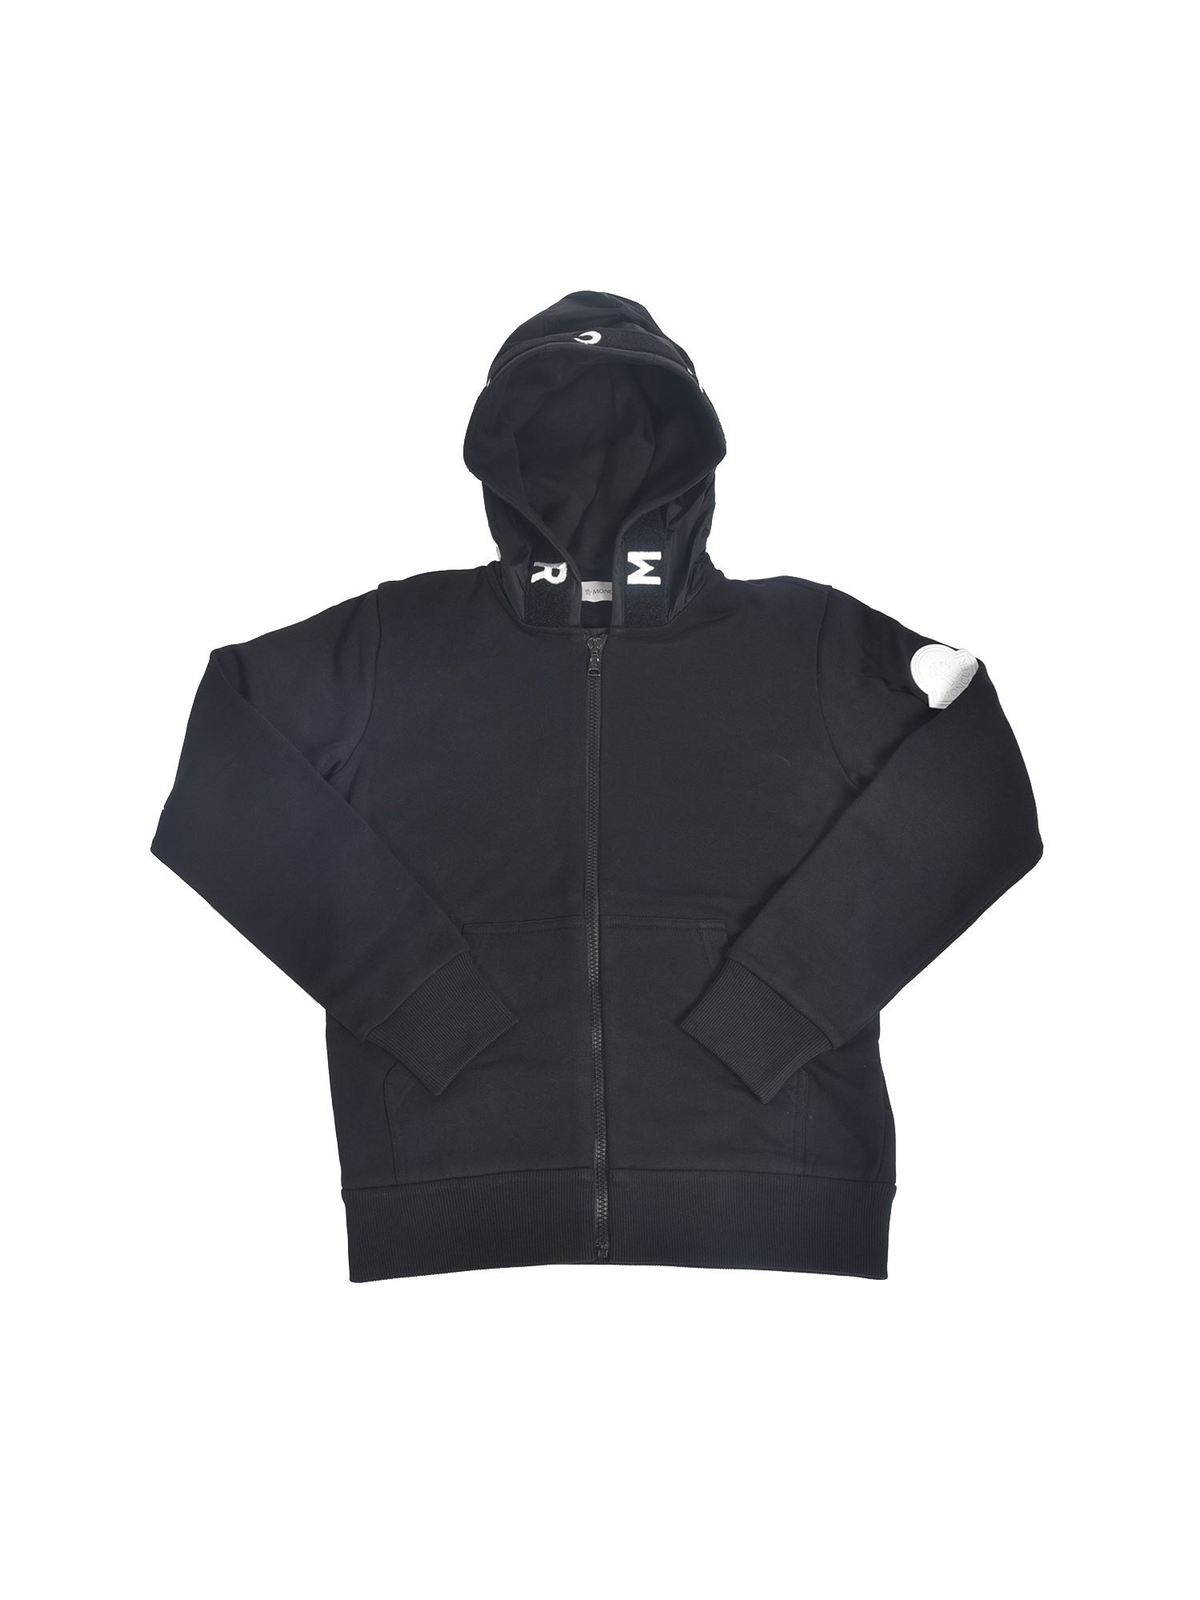 MONCLER JR SWEATSHIRT WITH LOGO PATCH IN BLACK